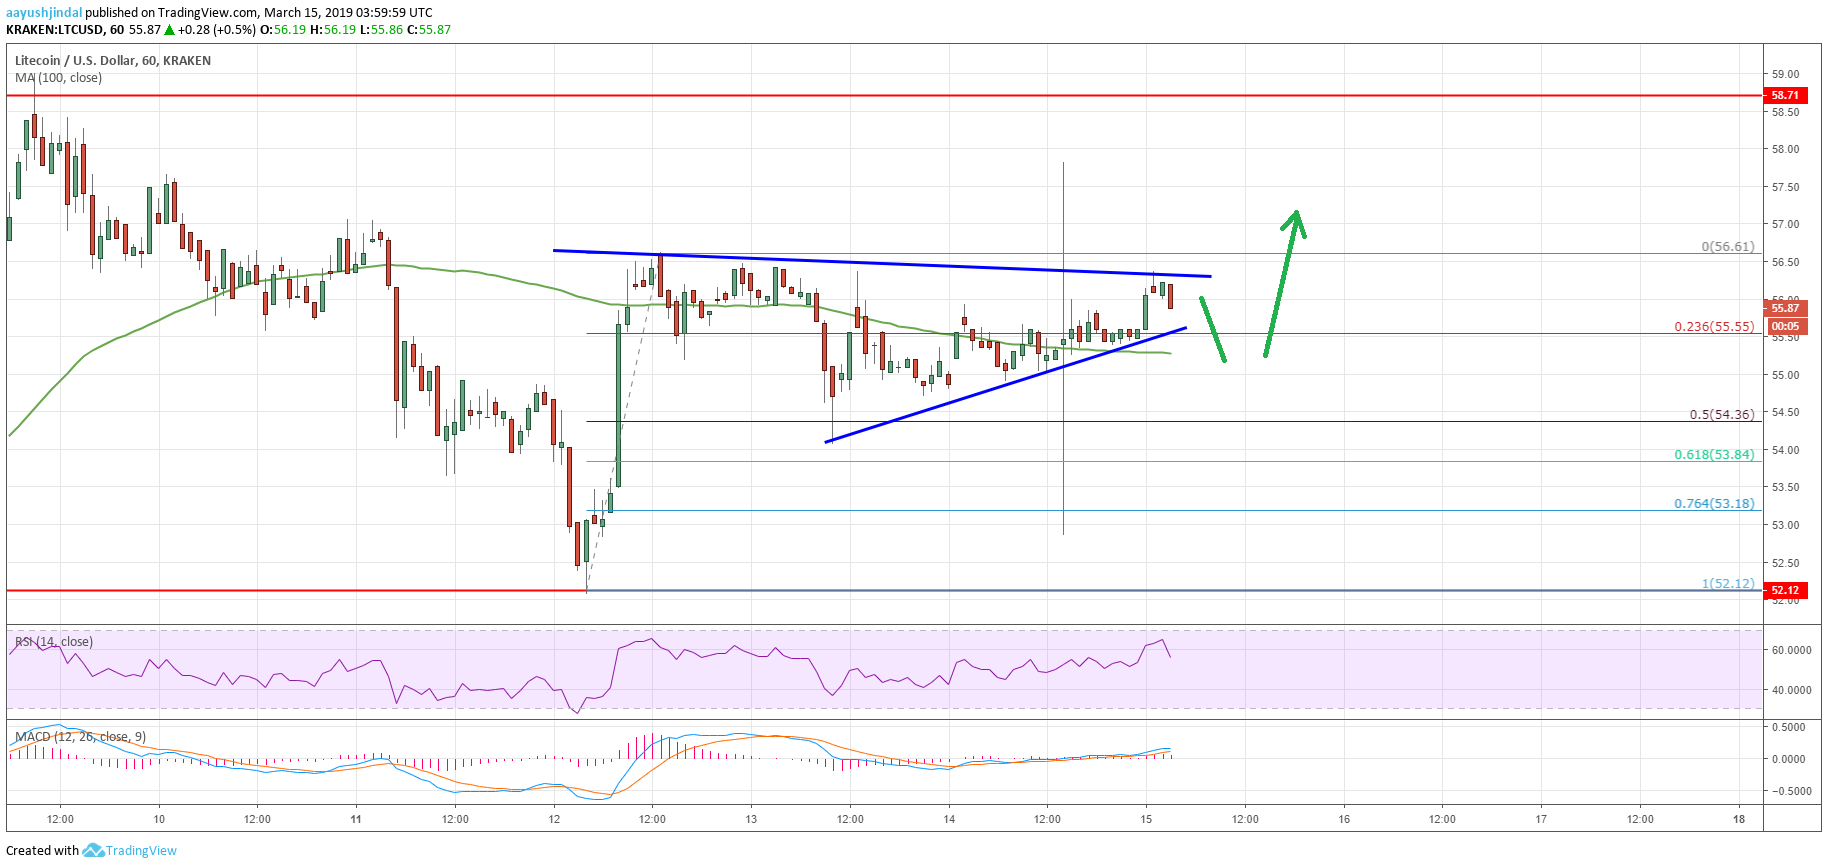 Litecoin (LTC) Price Remains In Uptrend, Eyes Gains Above $60